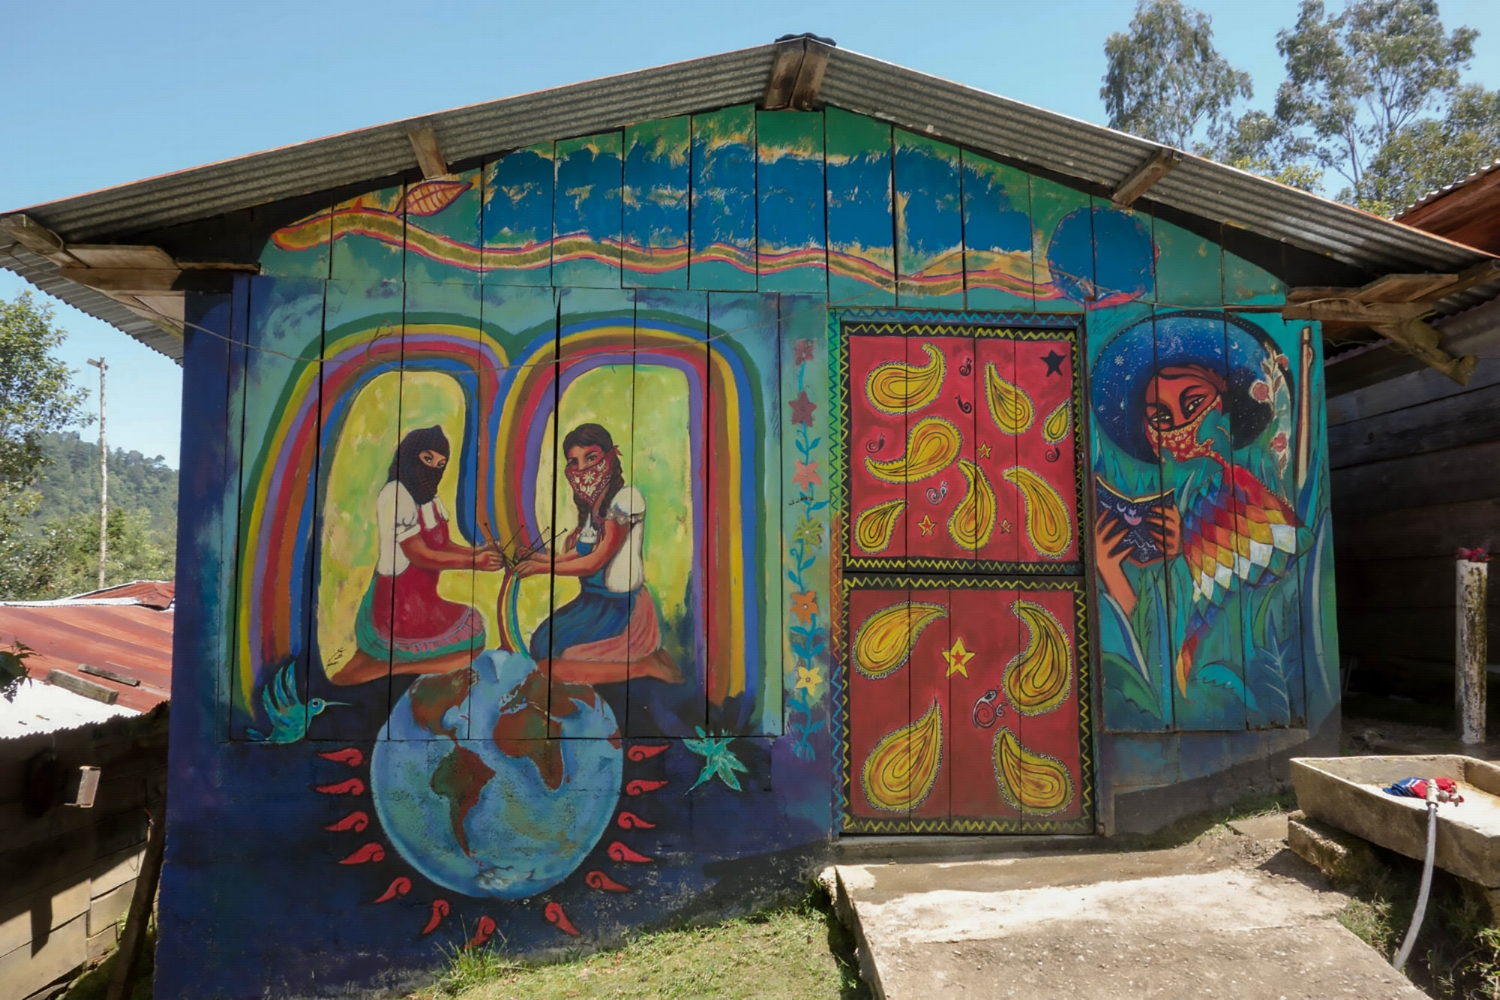 Credit, Lorie Novak,  www.lorienovak.com , 2013 Oventic Murals, from   Dancing with the Zapatistas